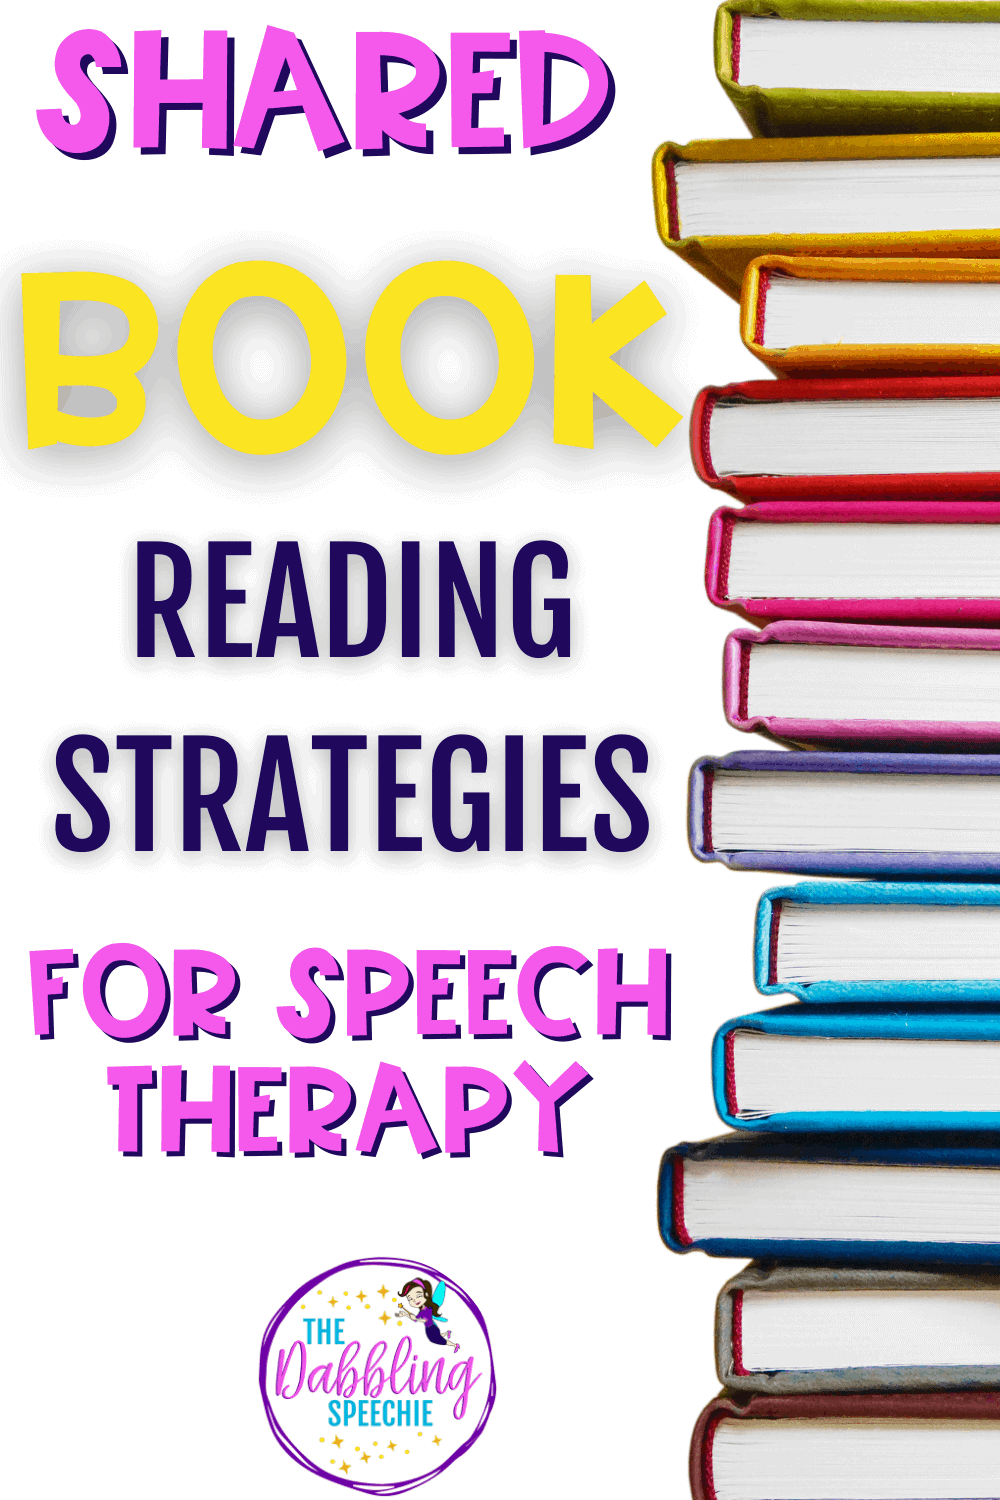 shared book reading strategies in speech therapy to build language skills and increase engagement.